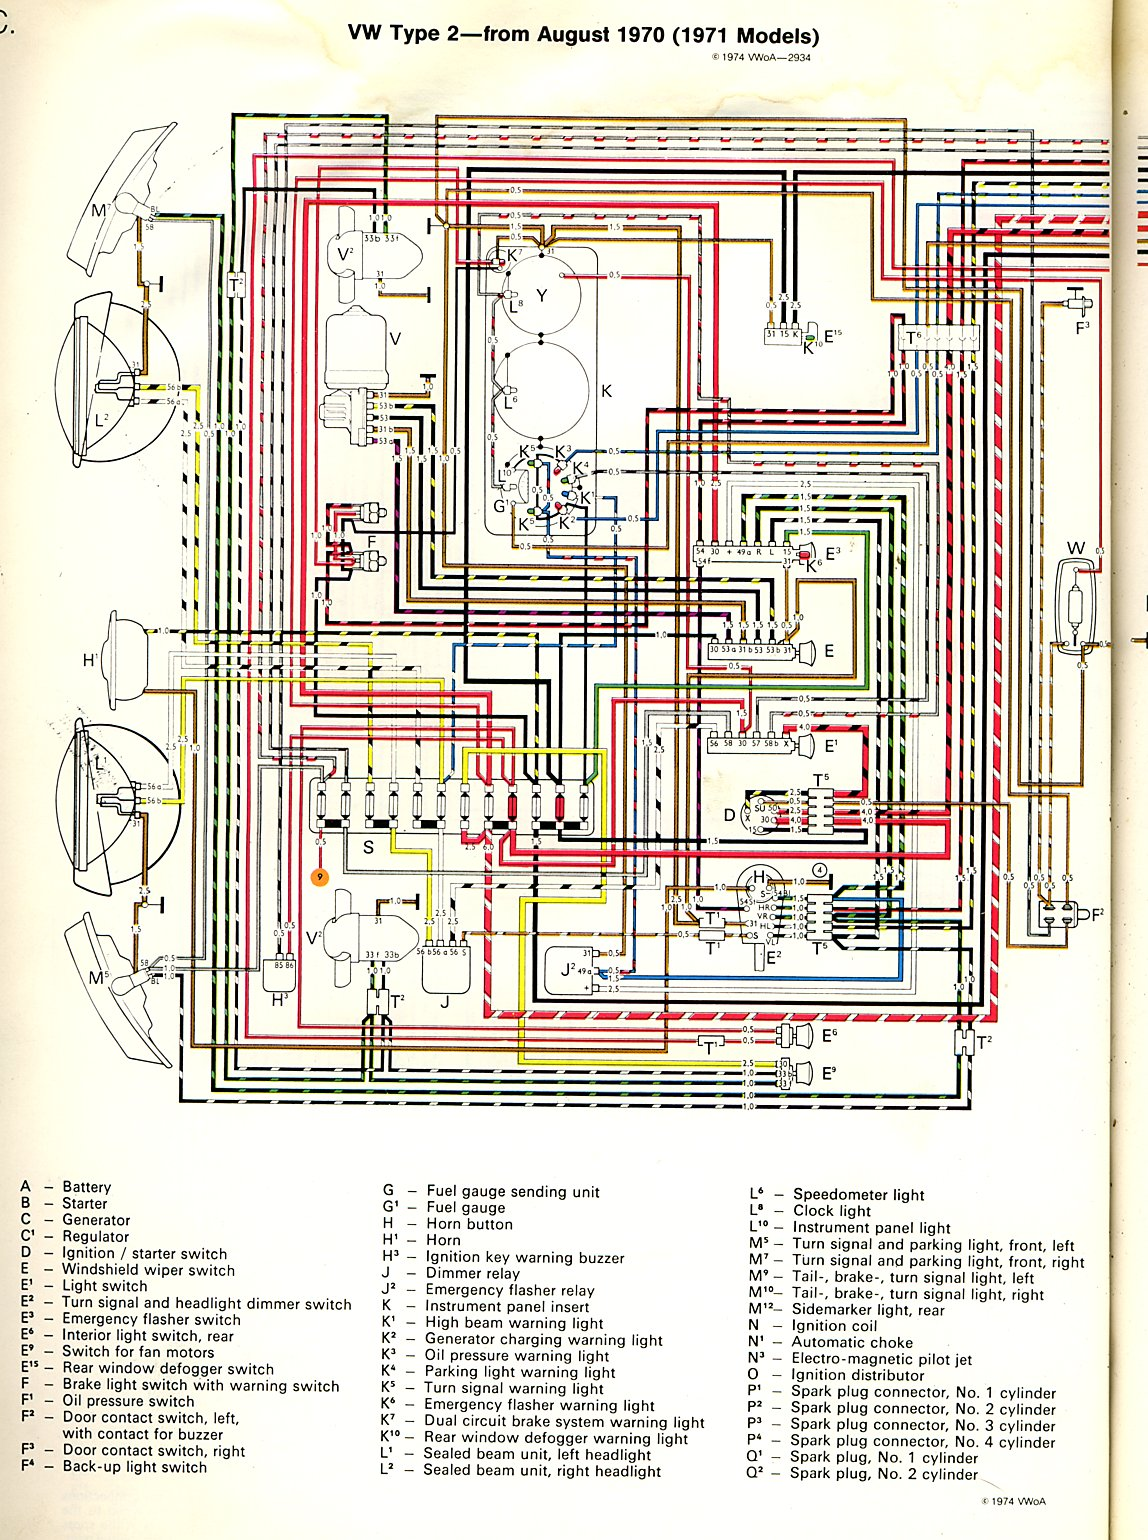 baybus_71a vw bus wiring diagram 1965 vw bus wiring diagram \u2022 wiring diagrams vw beetle wiring harness at readyjetset.co